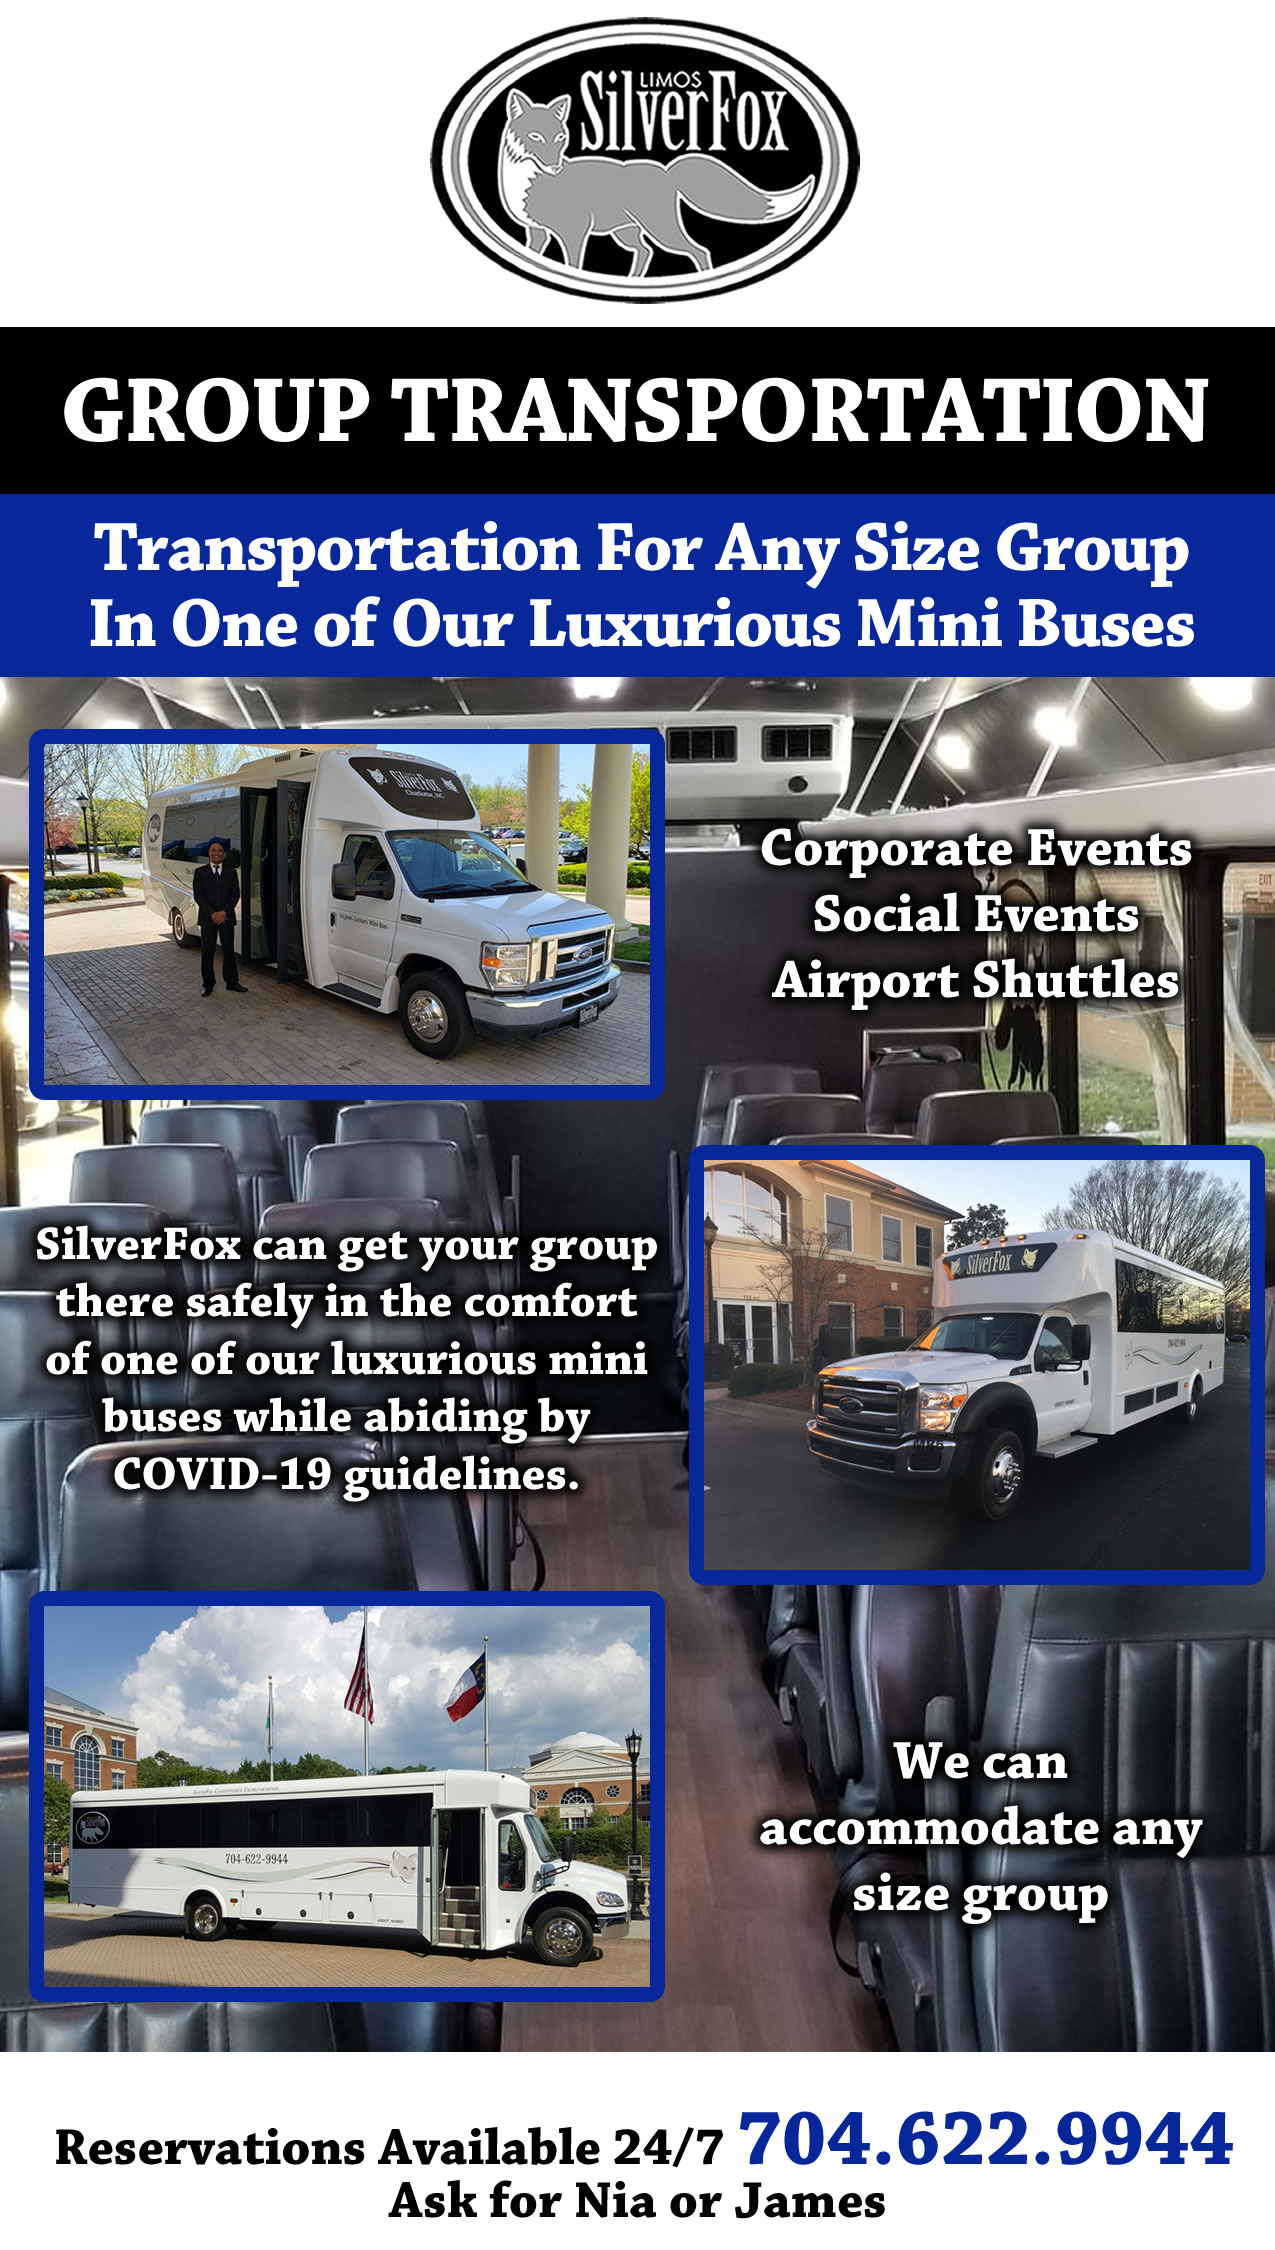 GroupTransportation_FLYER